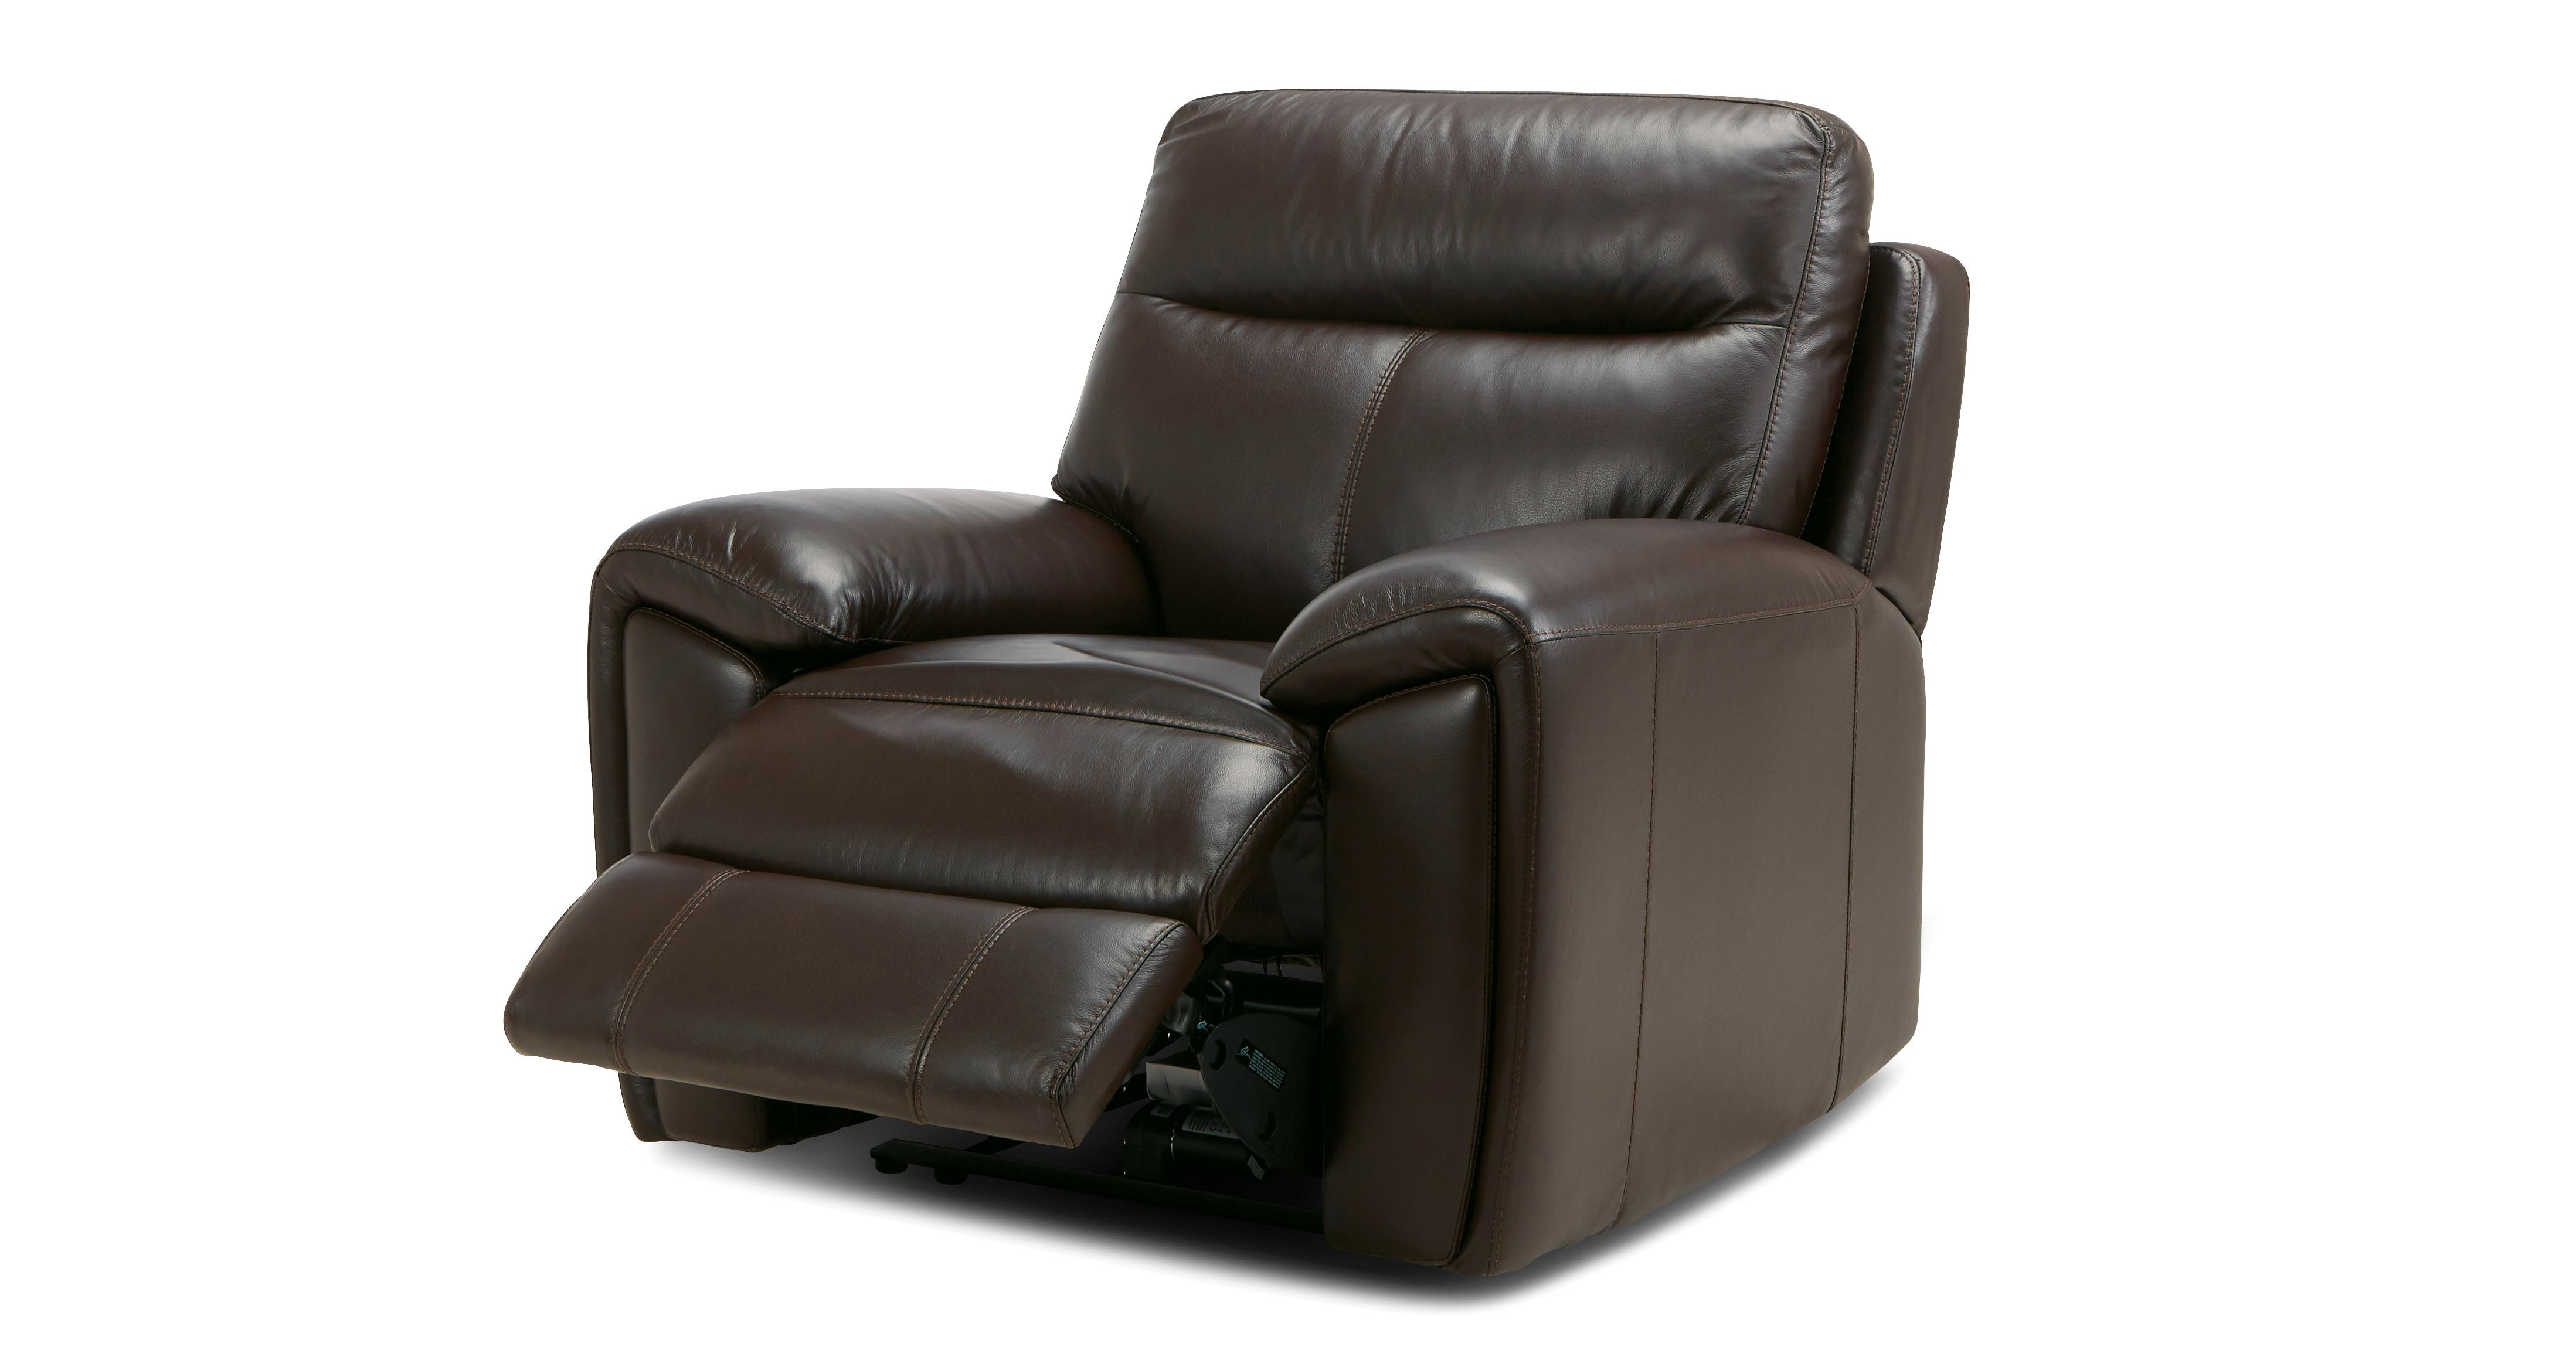 Chairs In Styles Including Swivel U0026 Recliners | DFS